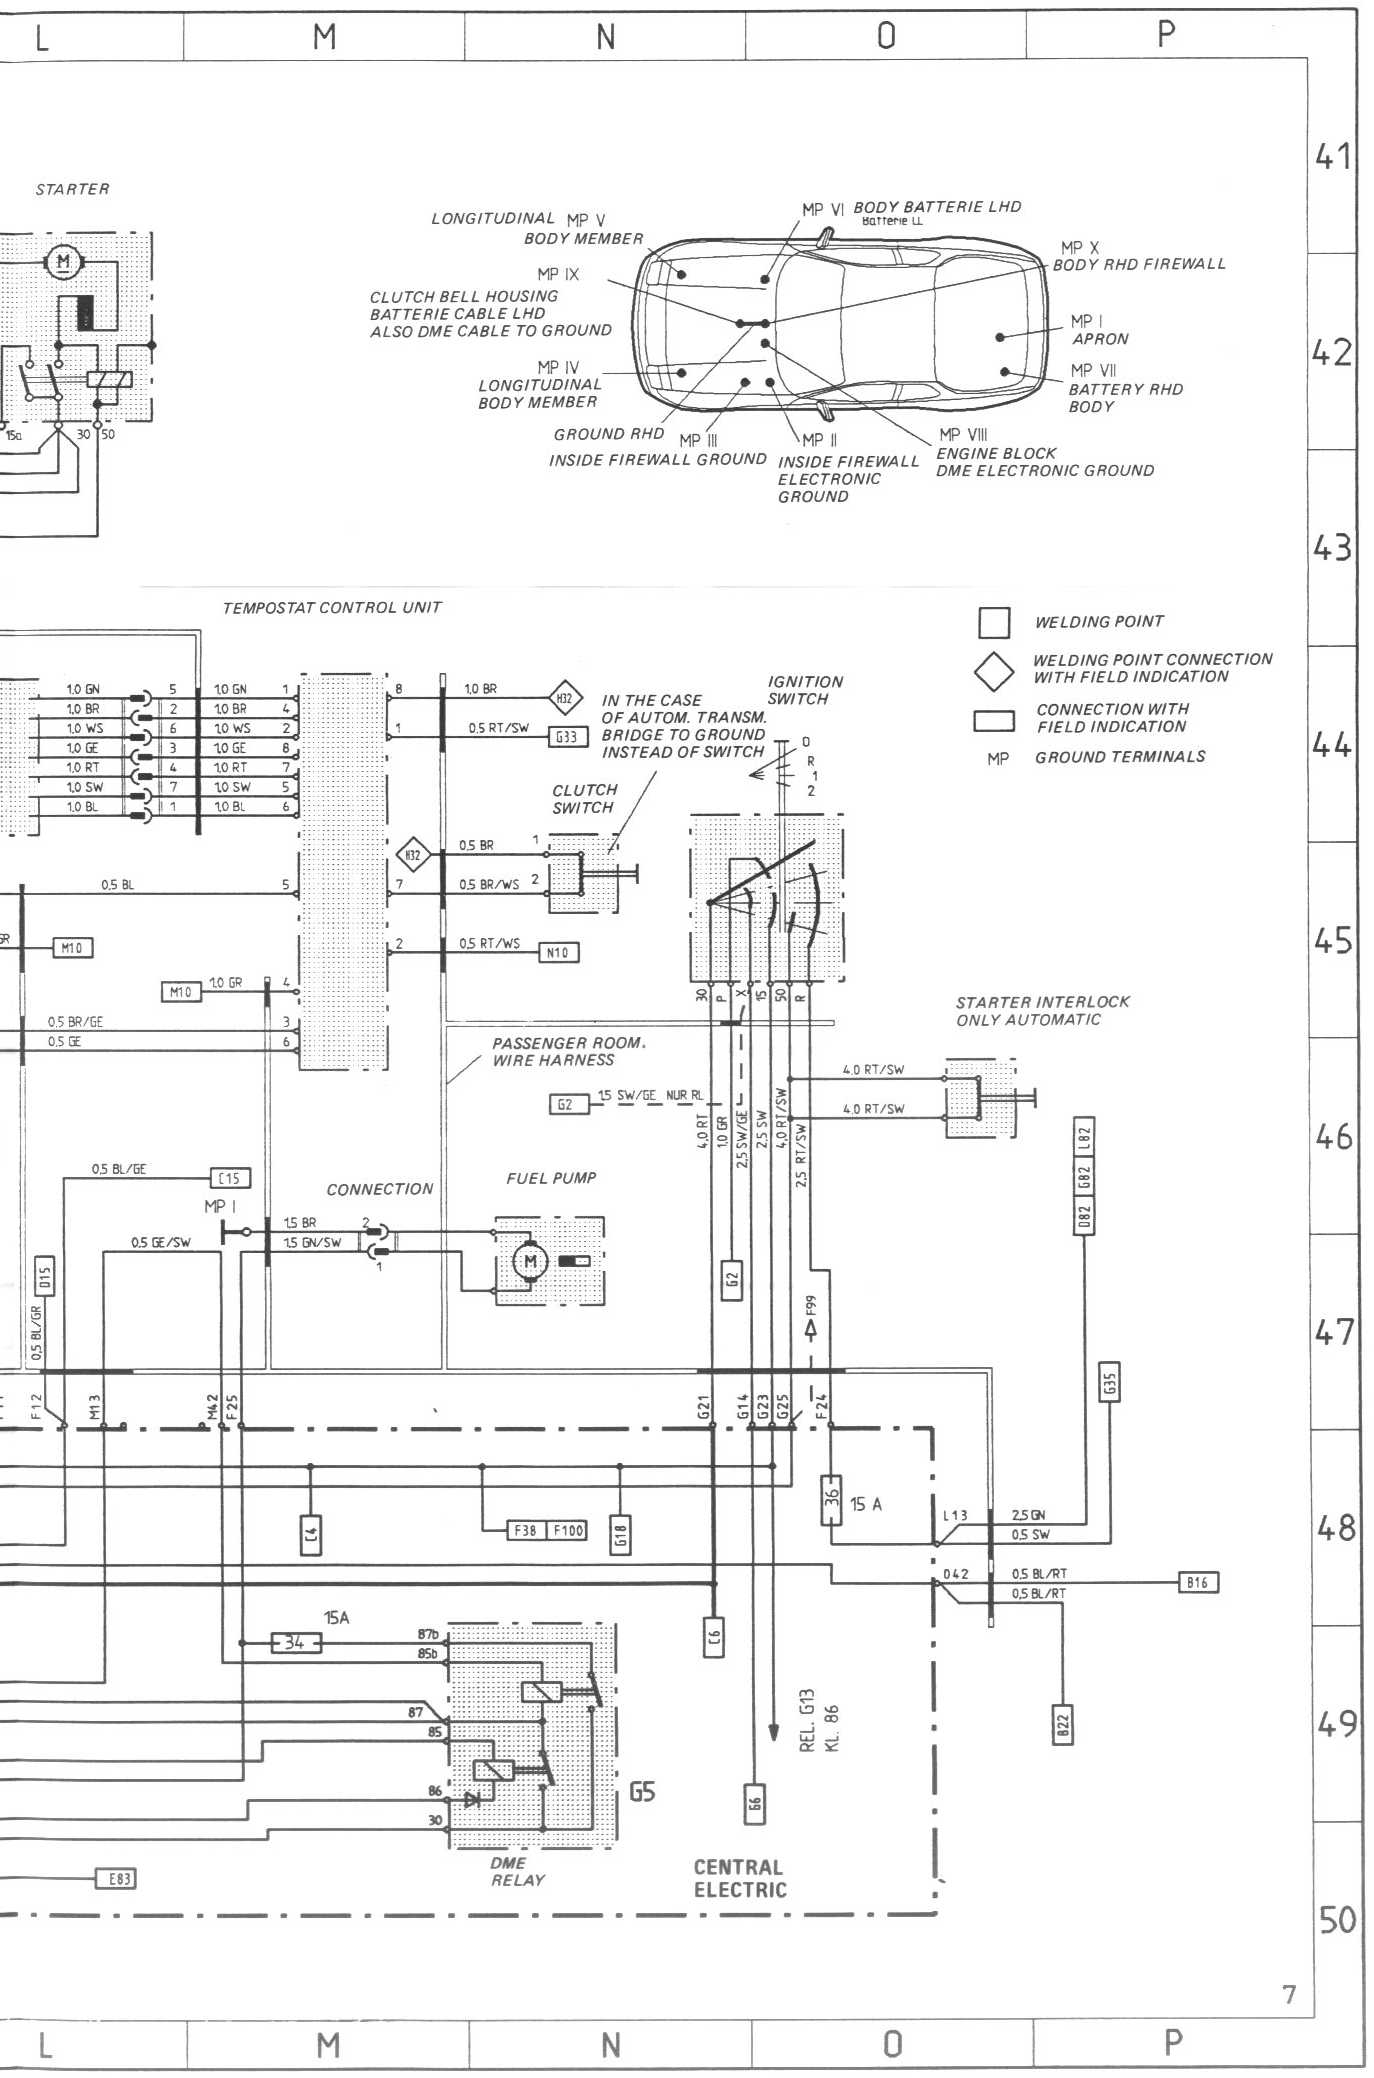 Clifford Alarm Wiring Diagram | Best Wiring Liry on troubleshooting diagrams, sincgars radio configurations diagrams, led circuit diagrams, battery diagrams, electronic circuit diagrams, transformer diagrams, series and parallel circuits diagrams, pinout diagrams, smart car diagrams, gmc fuse box diagrams, motor diagrams, internet of things diagrams, friendship bracelet diagrams, engine diagrams, electrical diagrams, honda motorcycle repair diagrams, hvac diagrams, snatch block diagrams, switch diagrams, lighting diagrams,